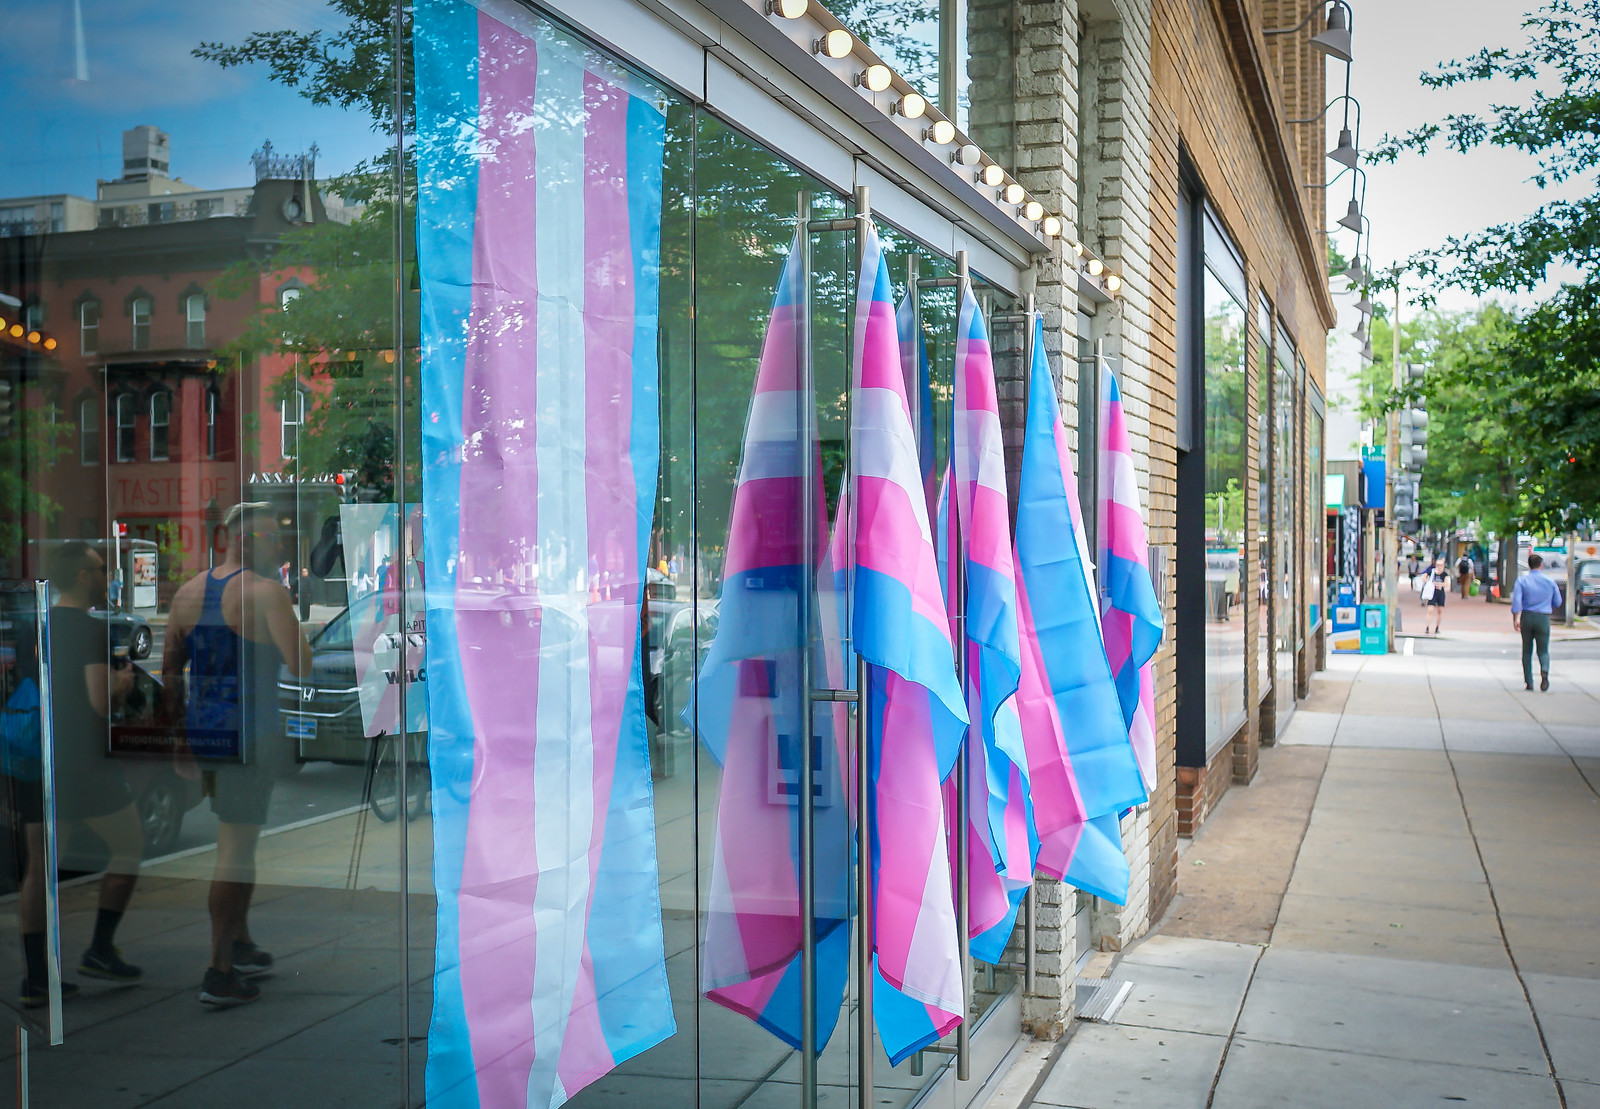 Thanks for publishing my photo, DCist, in Transgender Survey Shows Dismaying Discrimination Rates In D.C.